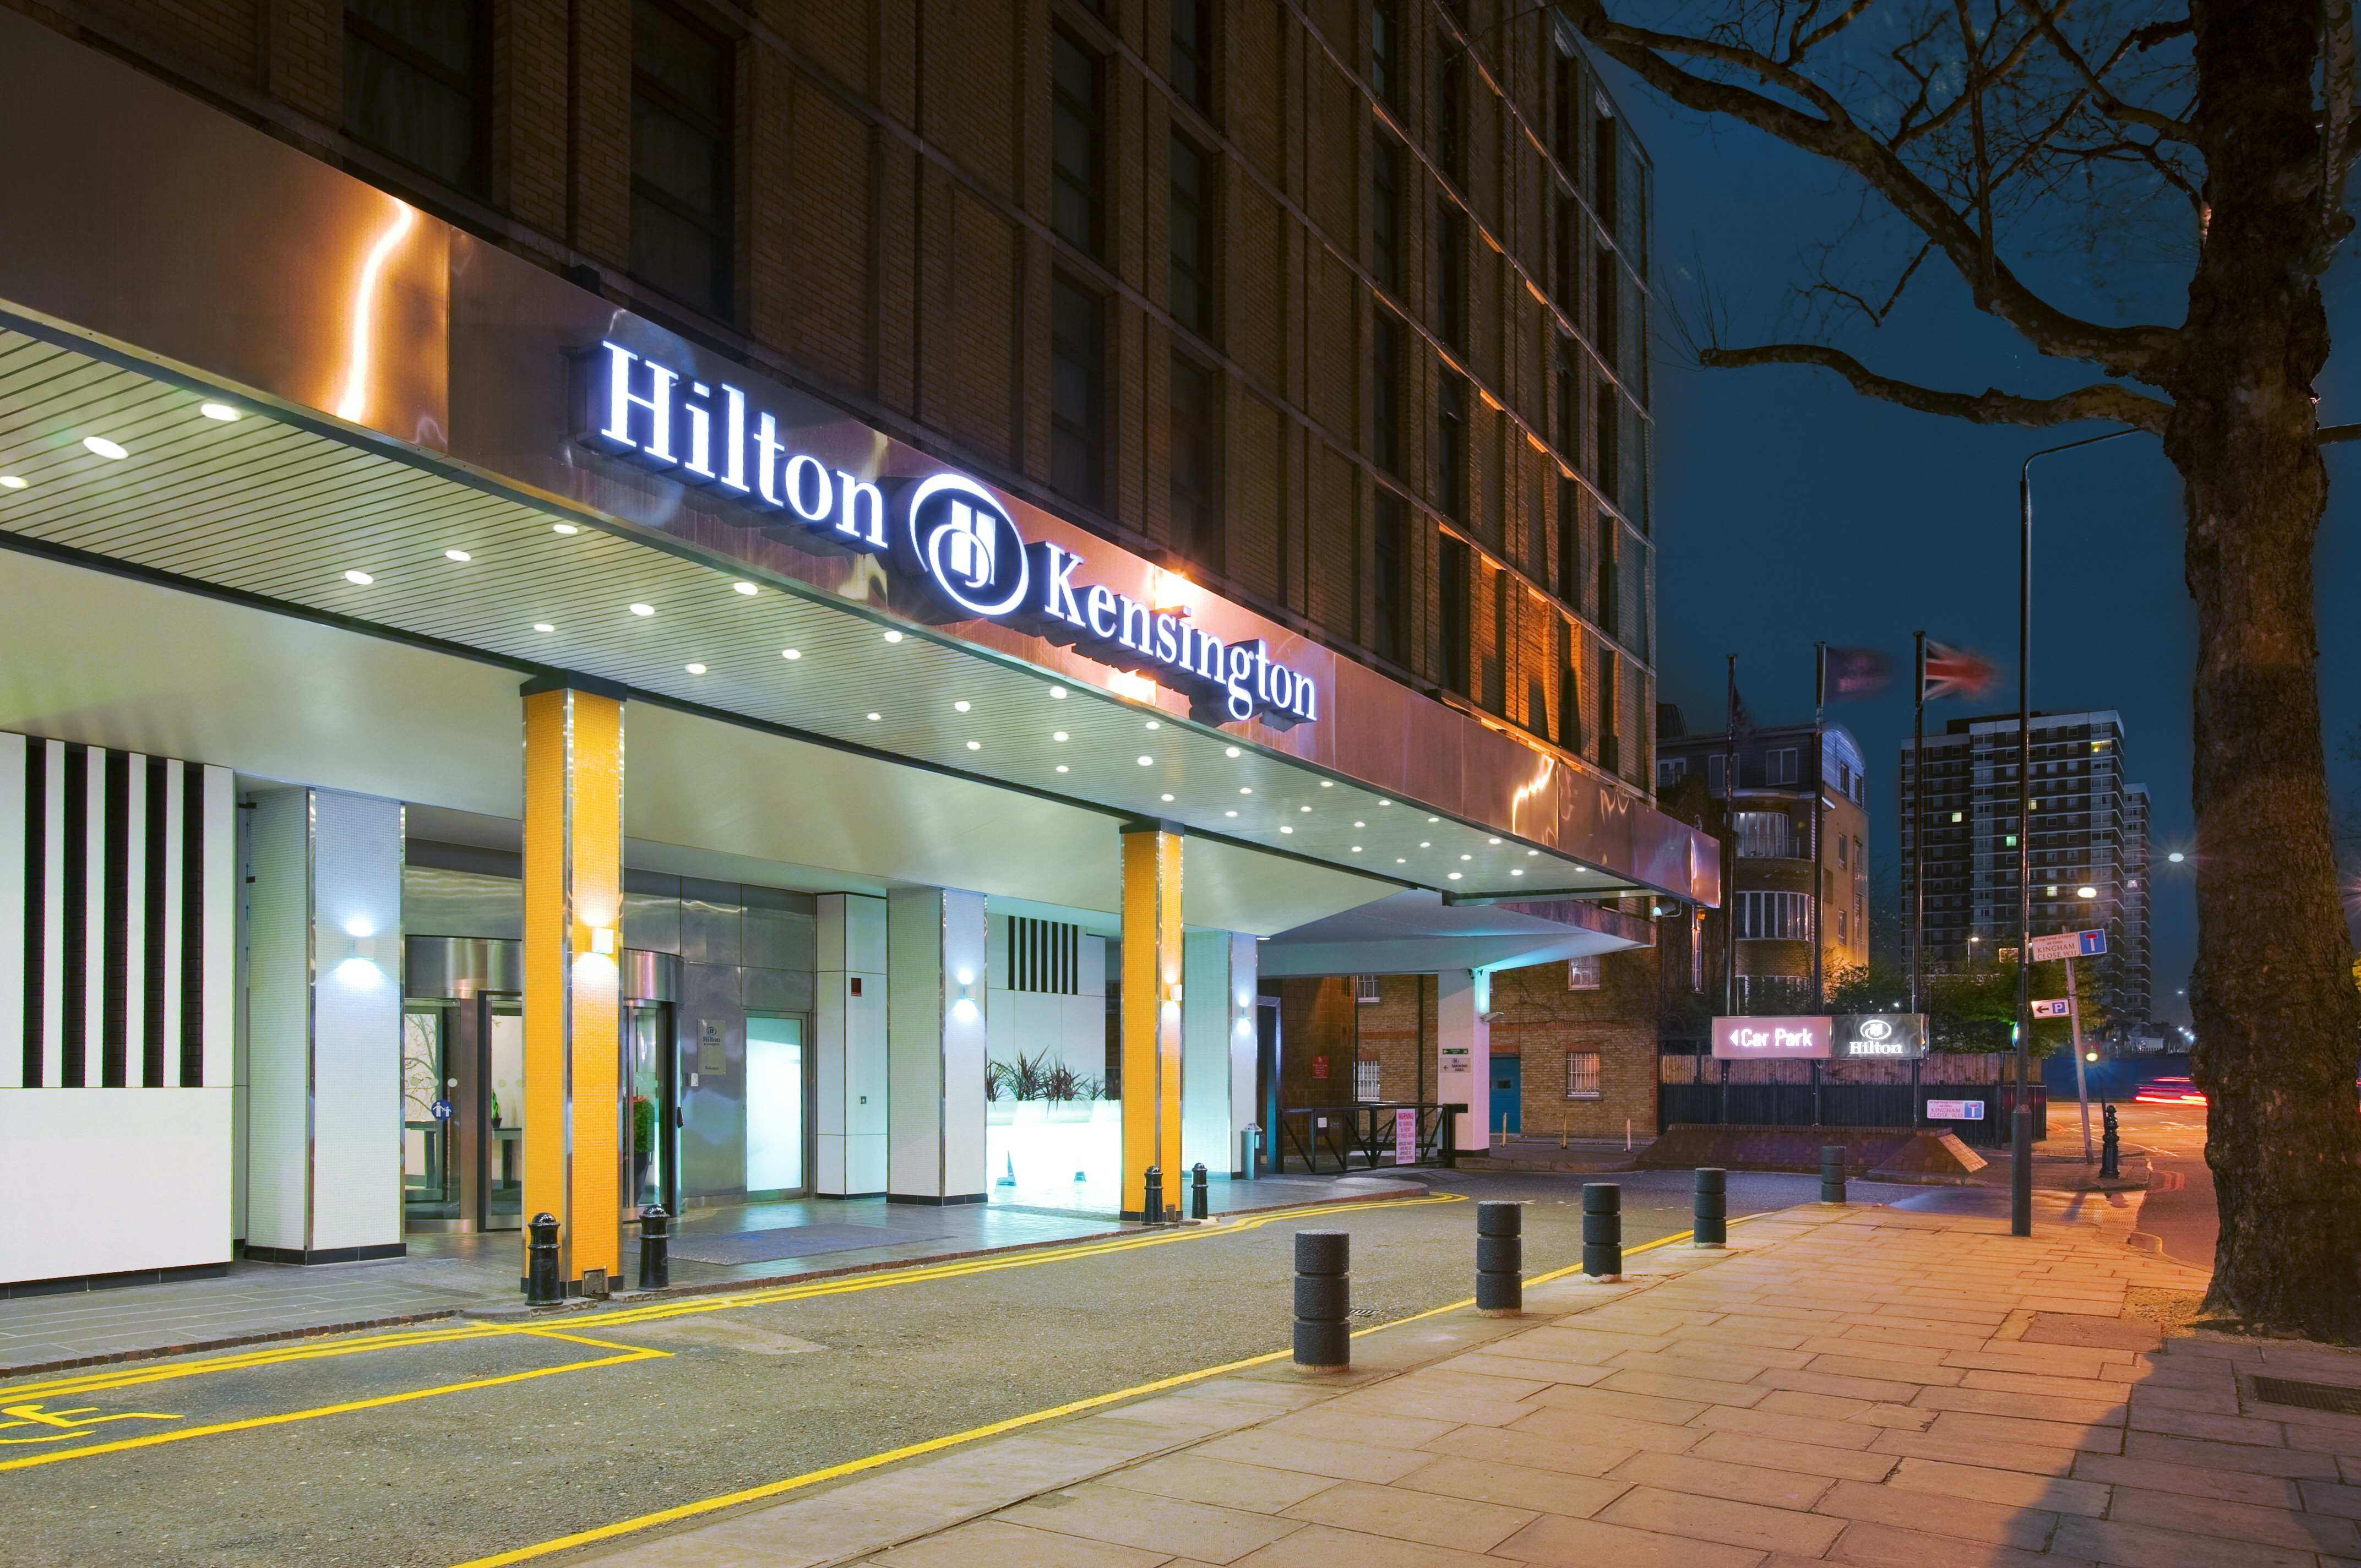 Hilton london kensington hotel kensington london hotel for London hotels